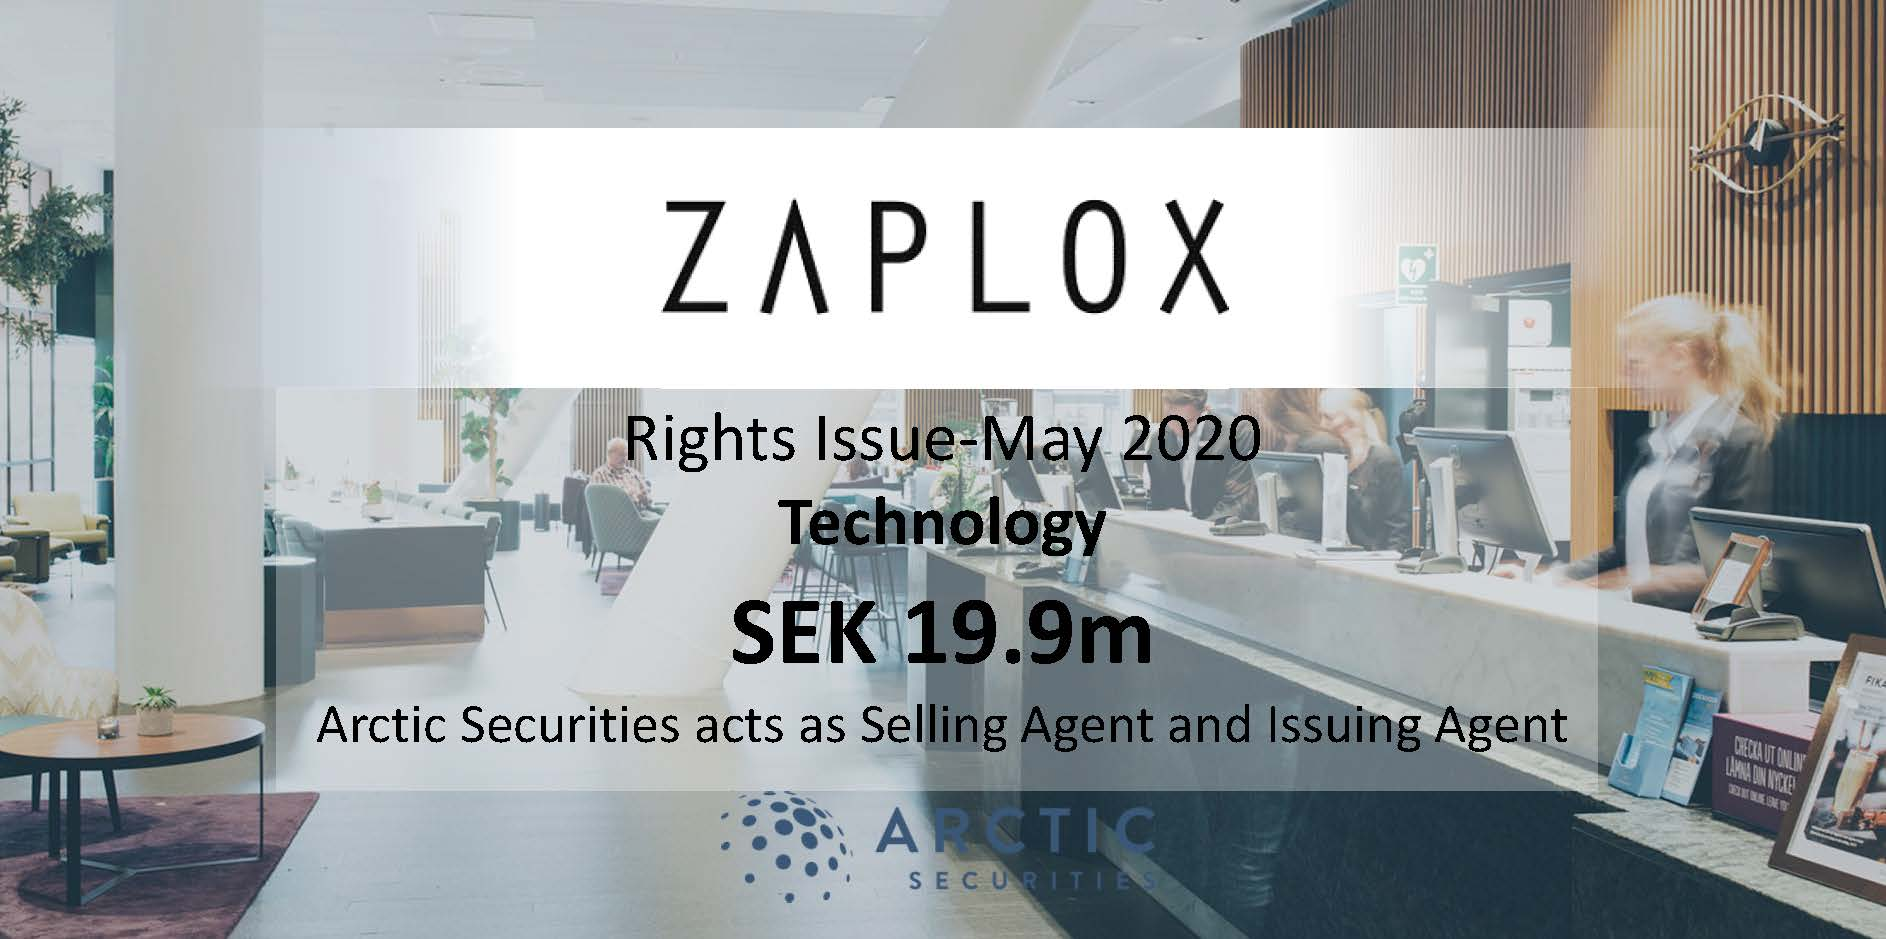 Zaplox AB - SEK 19.9m - Rights Issue